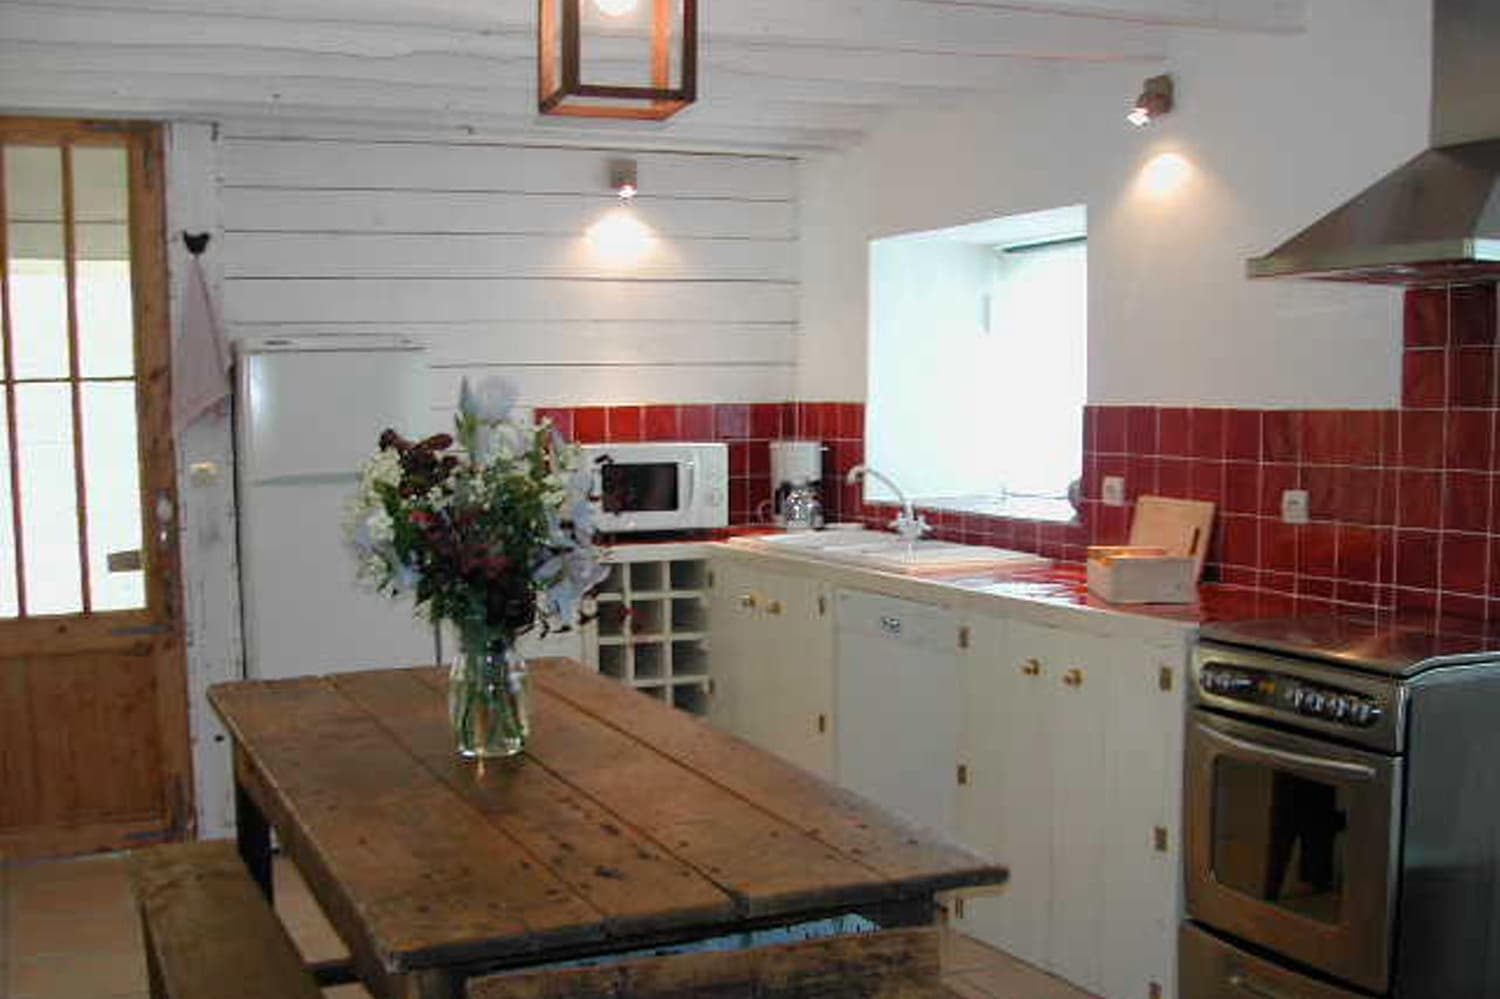 Kitchen in Dordogne self-catering accommodation